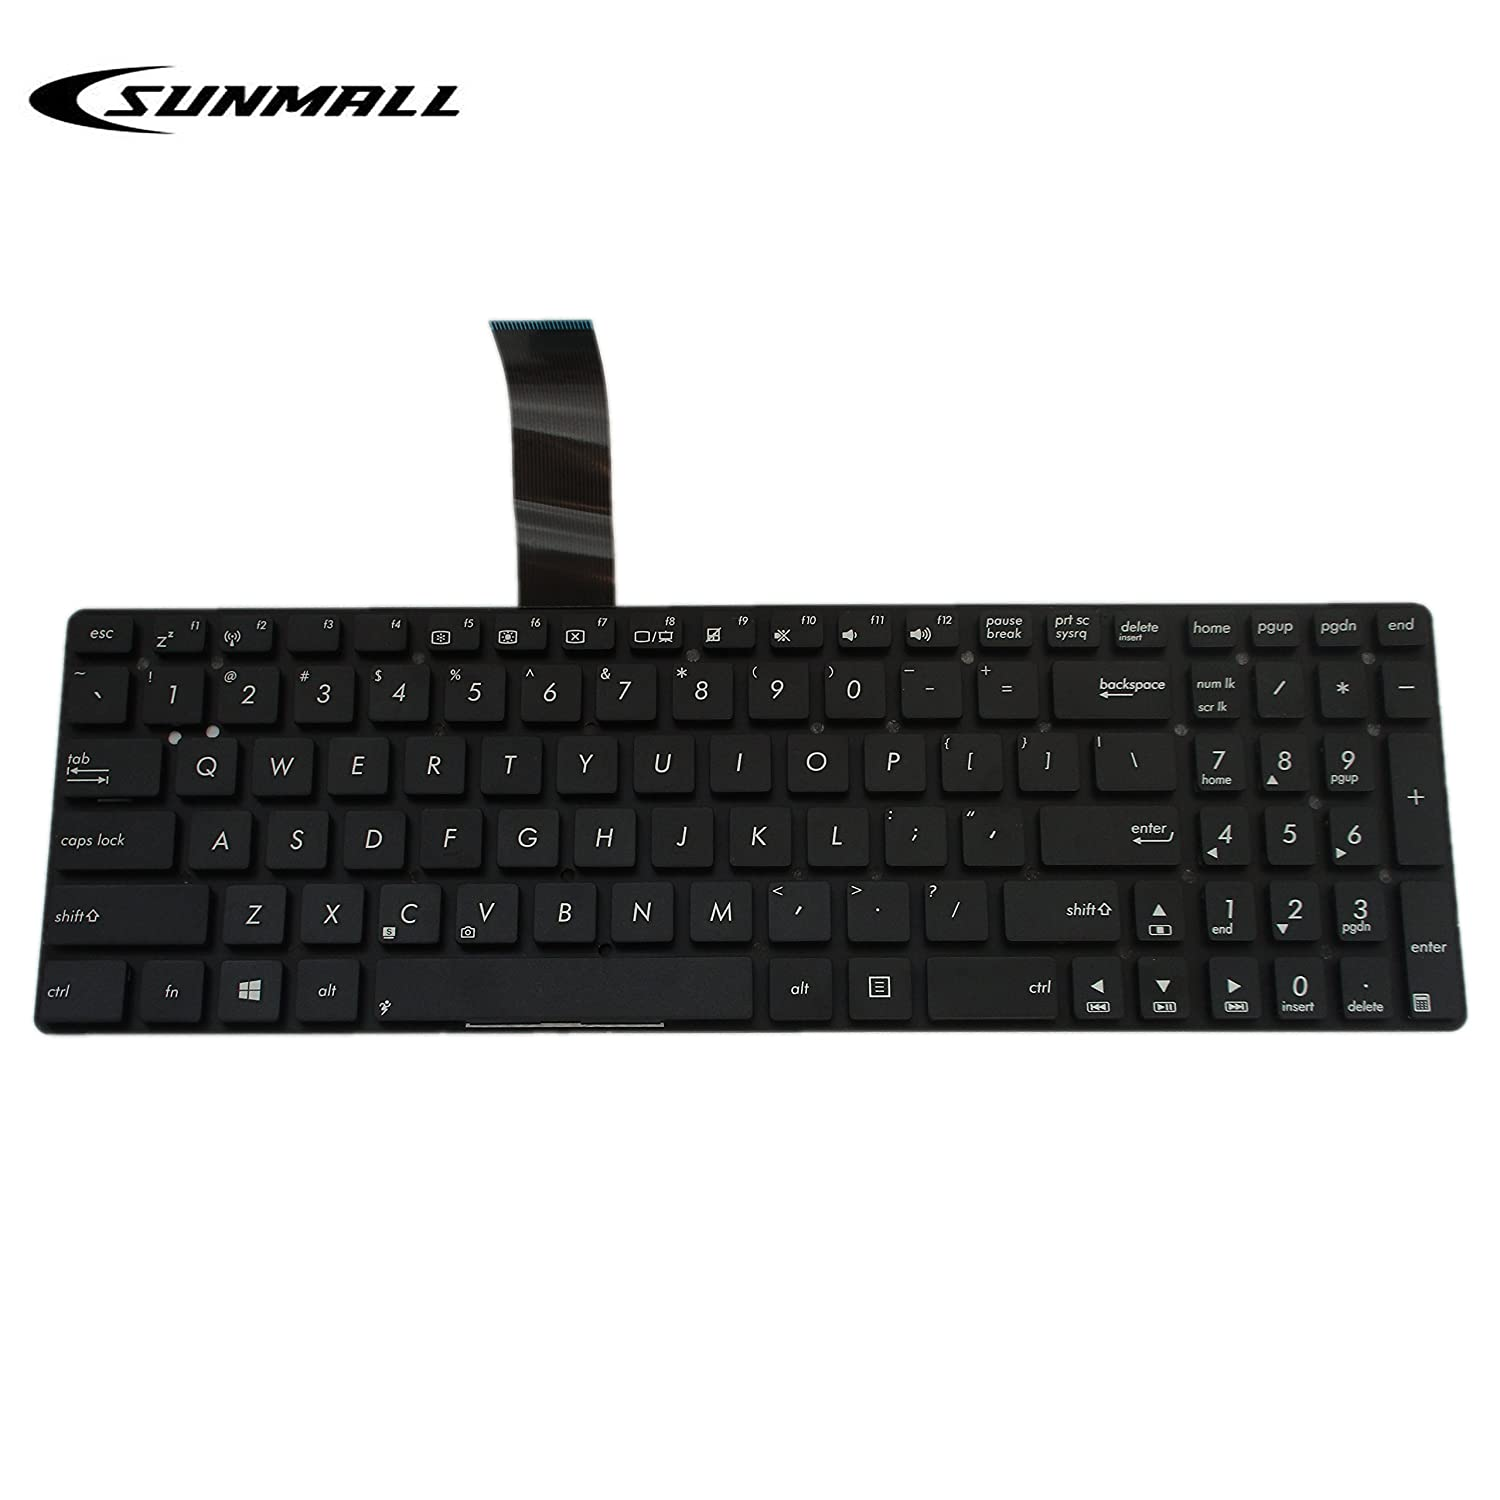 Wonderlijk Amazon.com: SUNMALL Keyboard Replacement Compatible with Asus K55 EJ-05